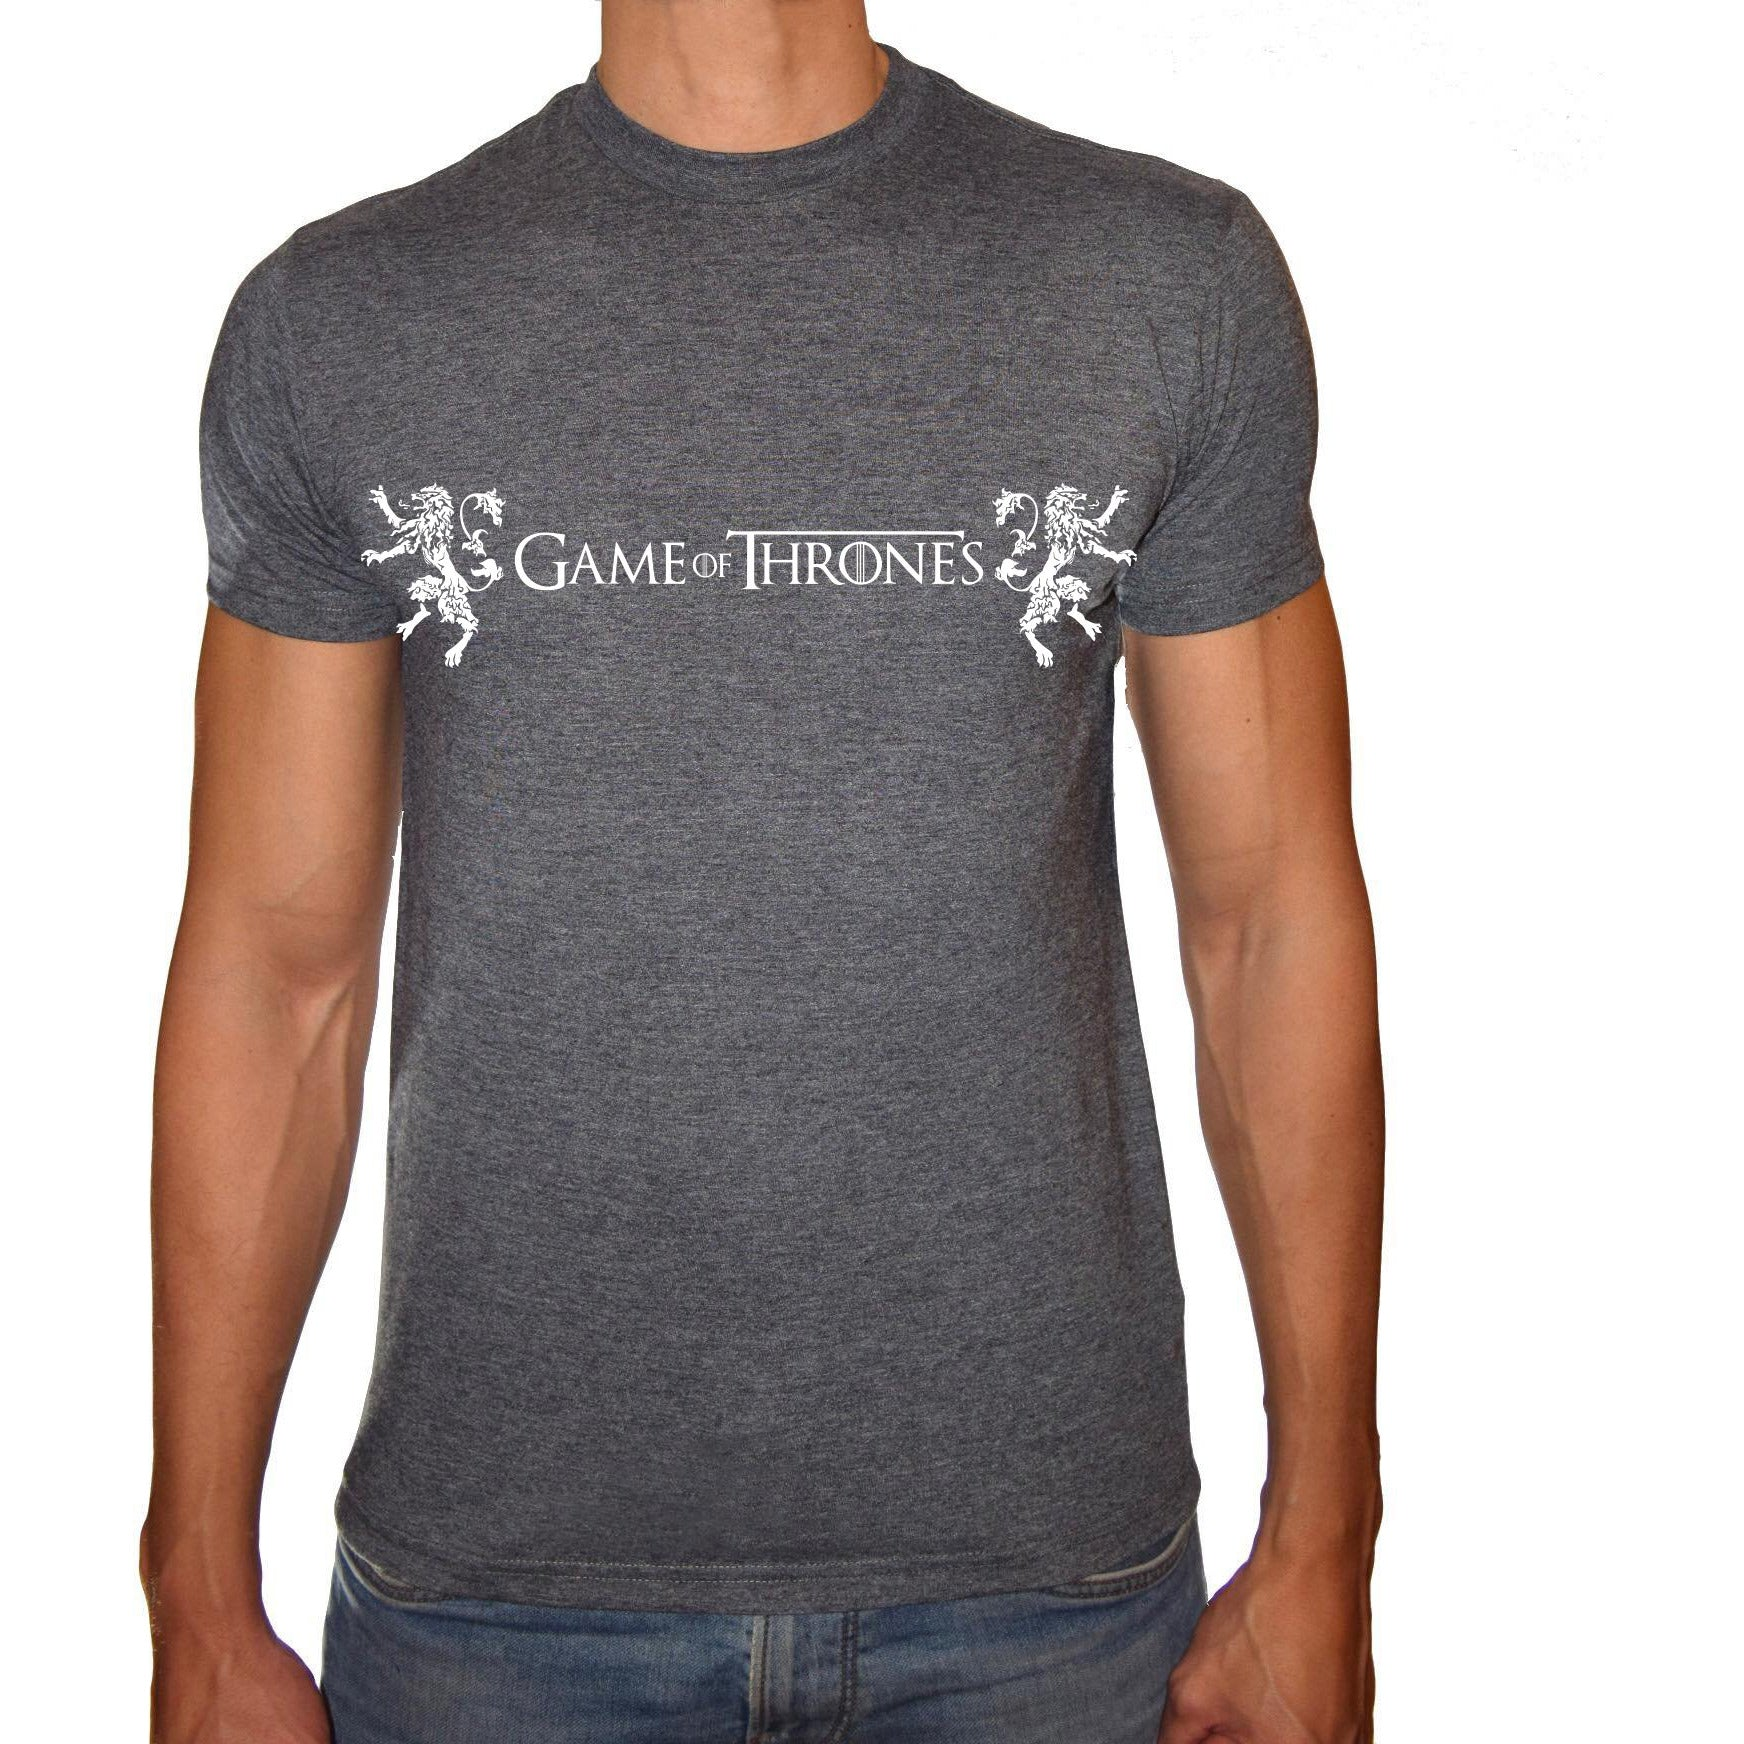 Phoenix CHARCOAL Round Neck Printed T-Shirt Men (Game of thrones - WOLF)